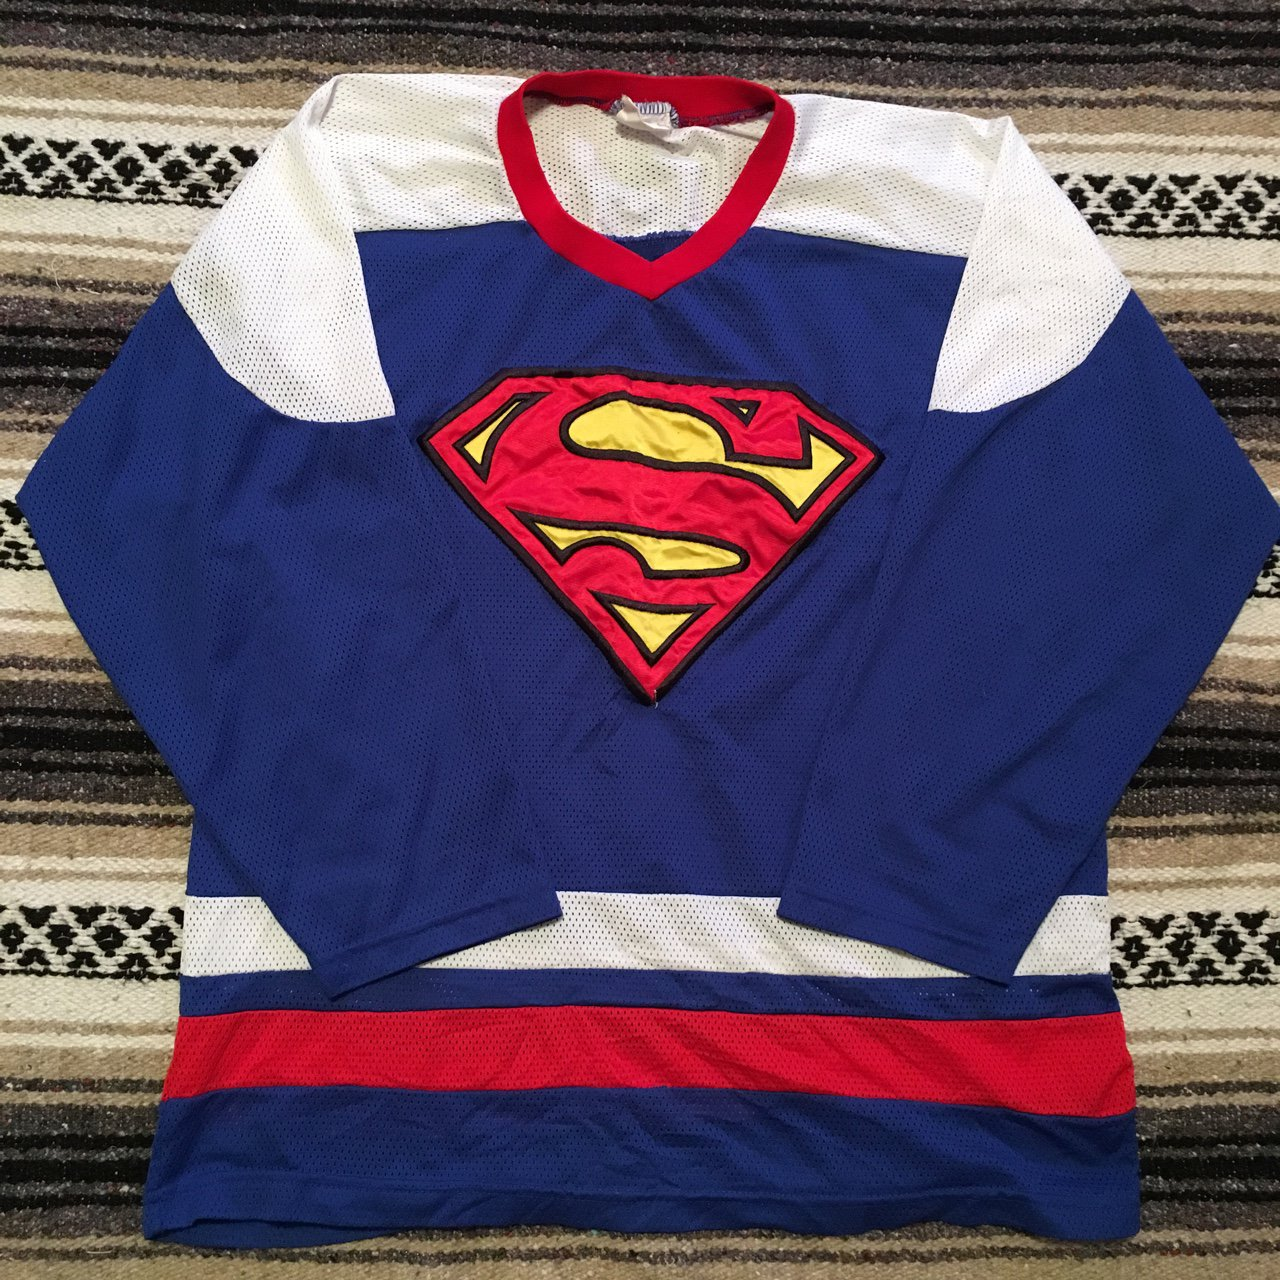 LAST CALL‼ Last day to purchase 1 9 19 Vintage Superman on - Depop e023f37a31b